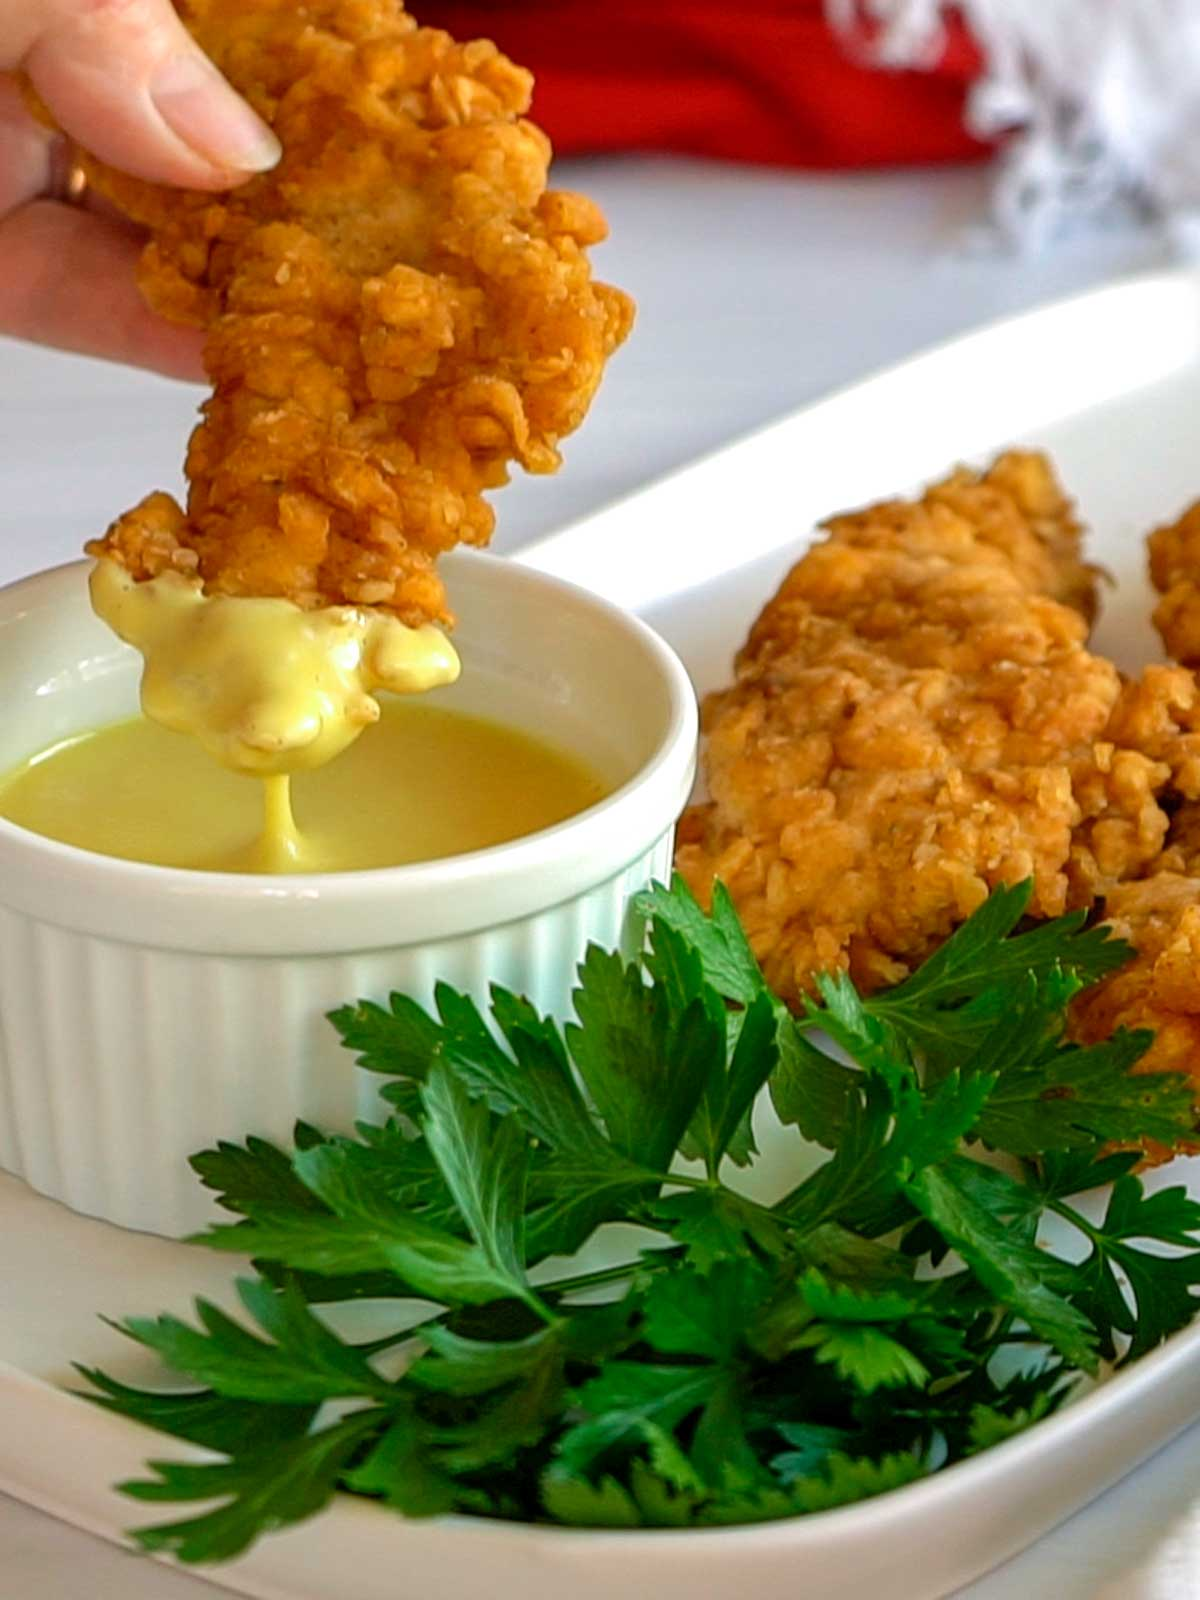 Dipping Southern Fried Chicken Strips in Honey Mustard Dipping Sauce